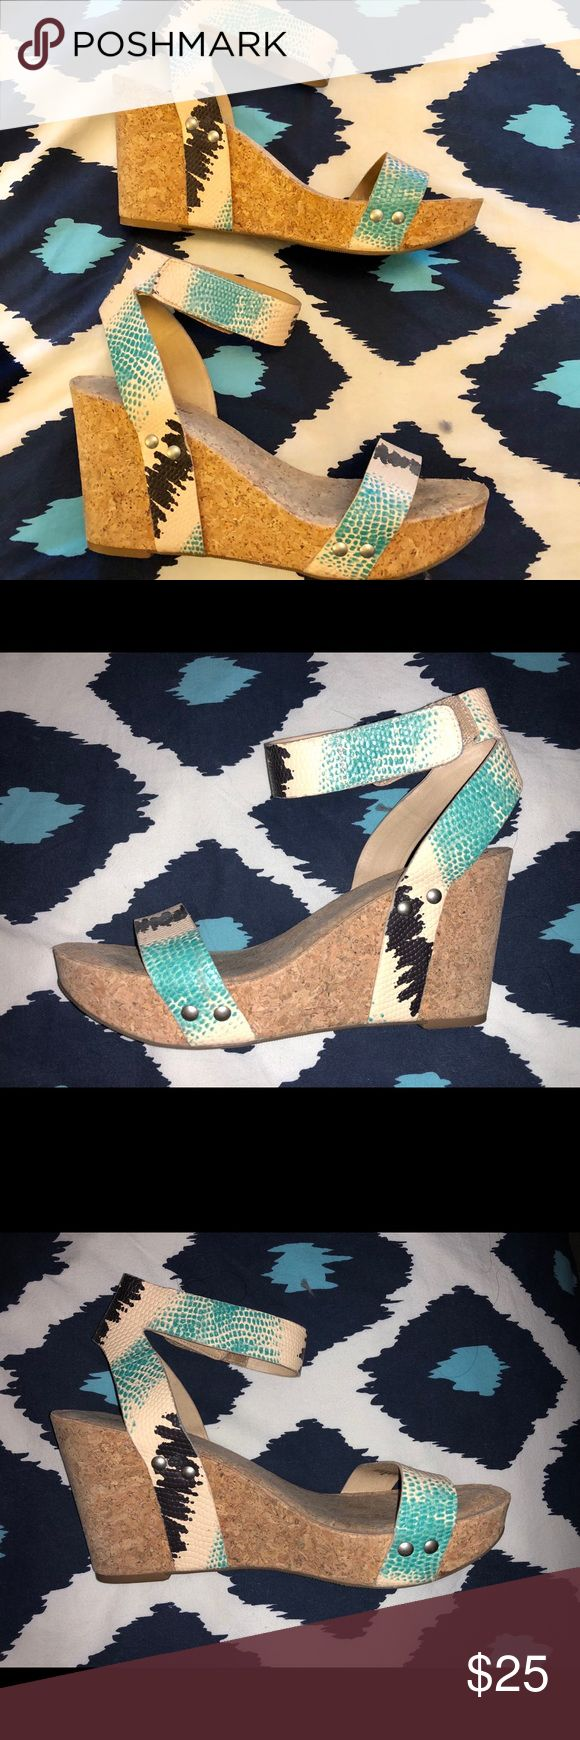 Lucky Brand blue and white wedge sandals-near new! - These wedges are PERFECT for spring! - Only worn once and in great condition. - Heel height is 4 inches. Toe platform is 1.25 inches. - Velcro closure at the ankle. - Leather upper. Sole has cork appearance. Lucky Brand Shoes Wedges